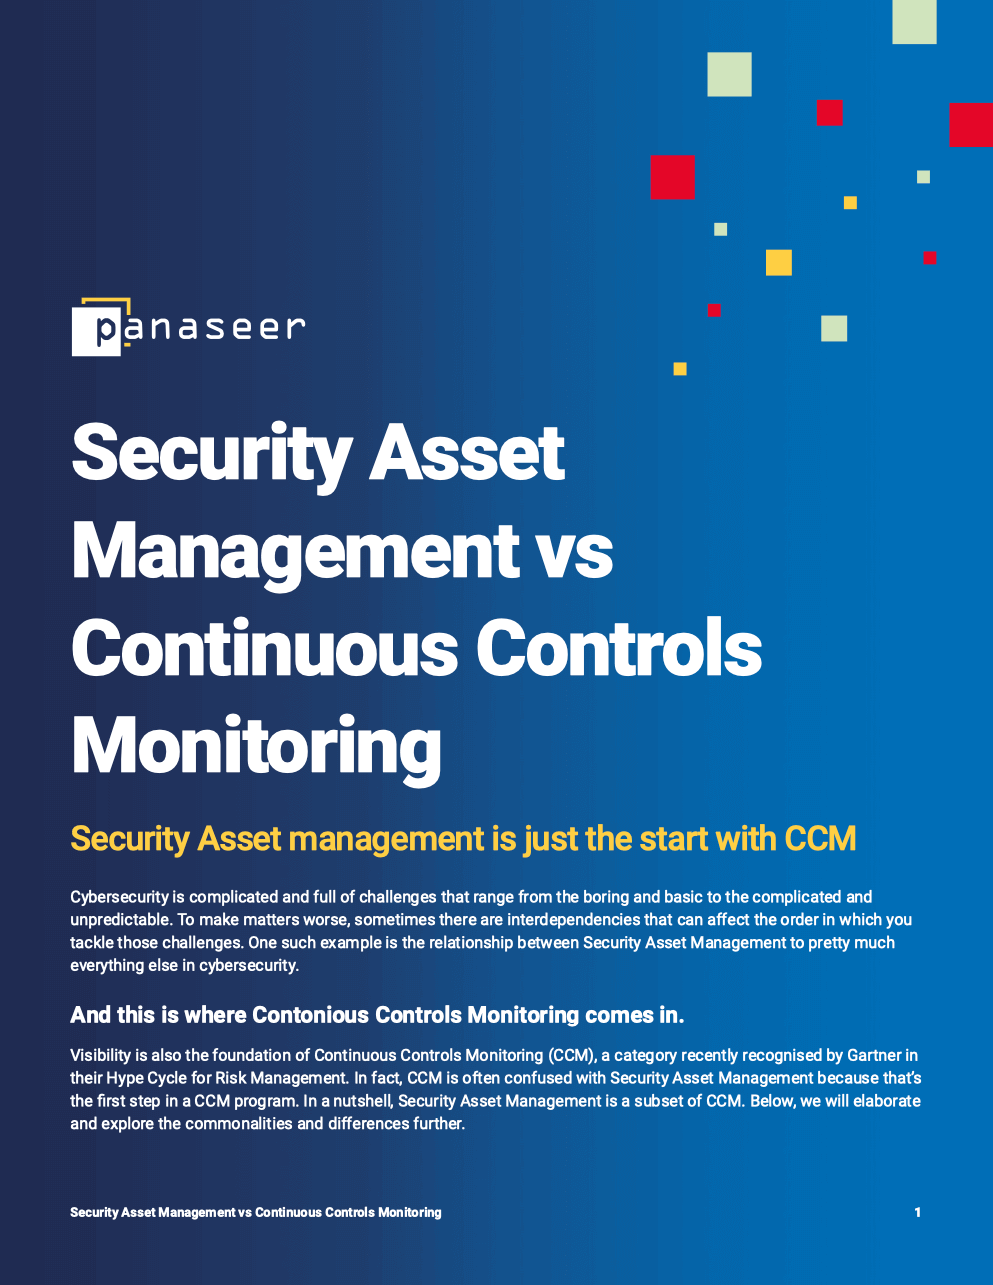 Security Asset Management vs Continuous Controls Monitoring